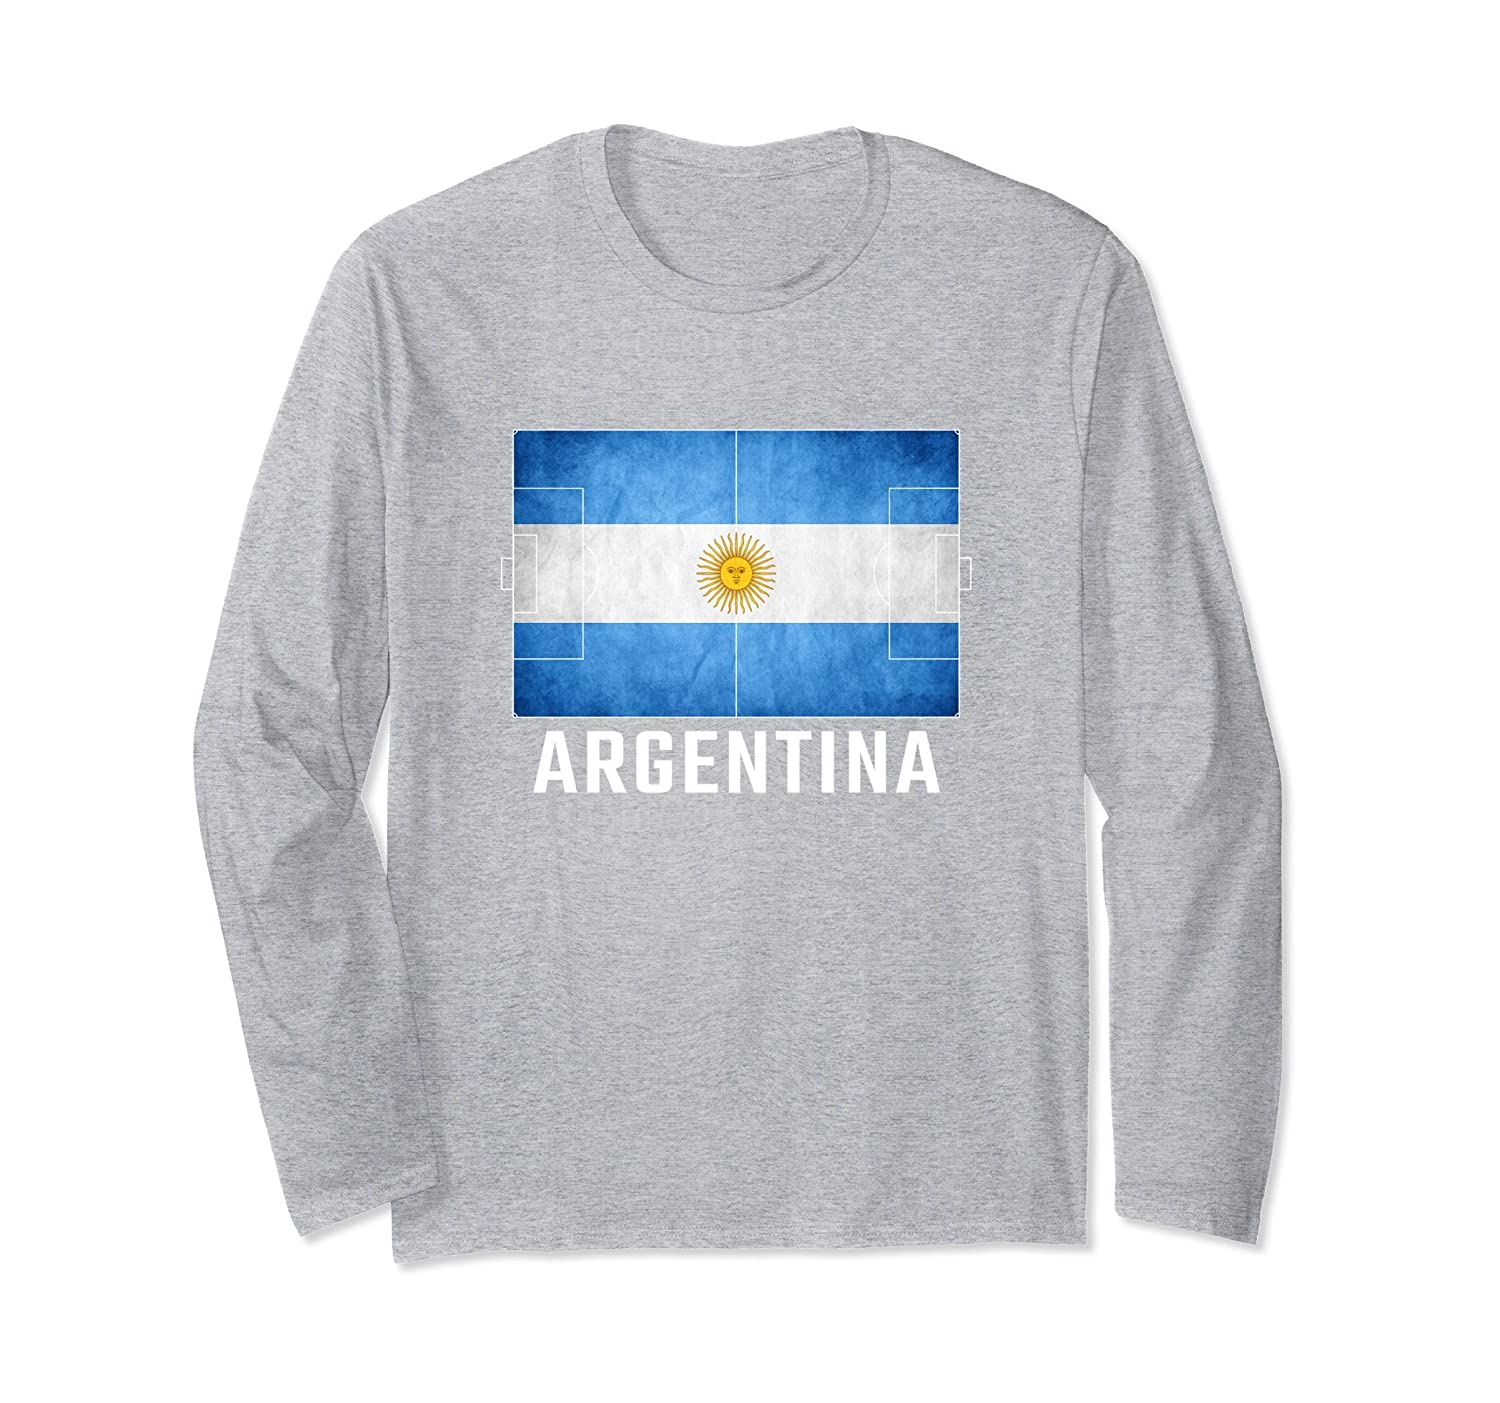 Argentina Team and Soccer Shirt Argentina Flag-ah my shirt one gift